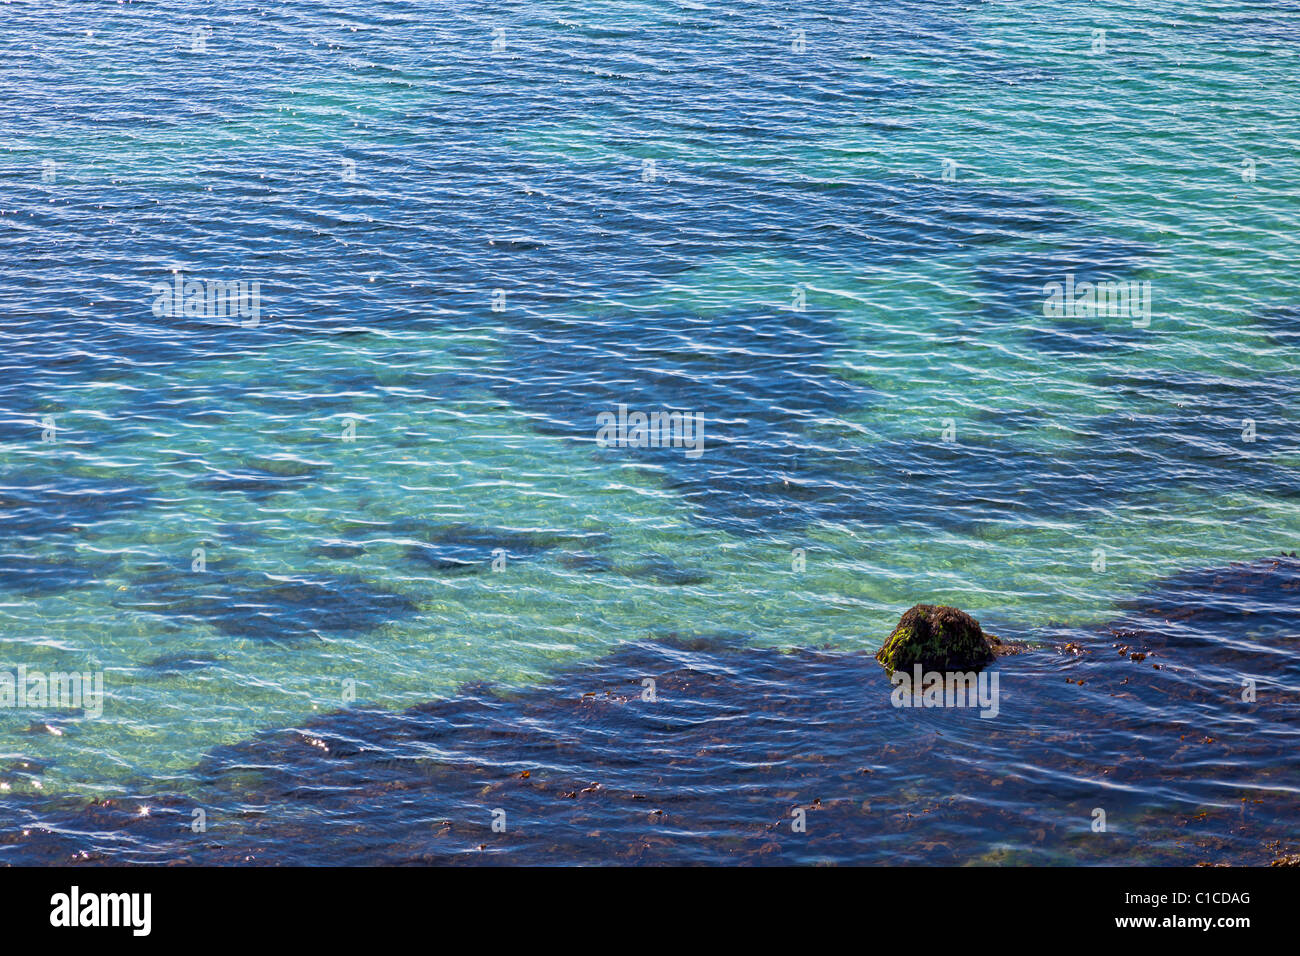 Shallow sea water ripples covering seaweed, France, Europe - Stock Image